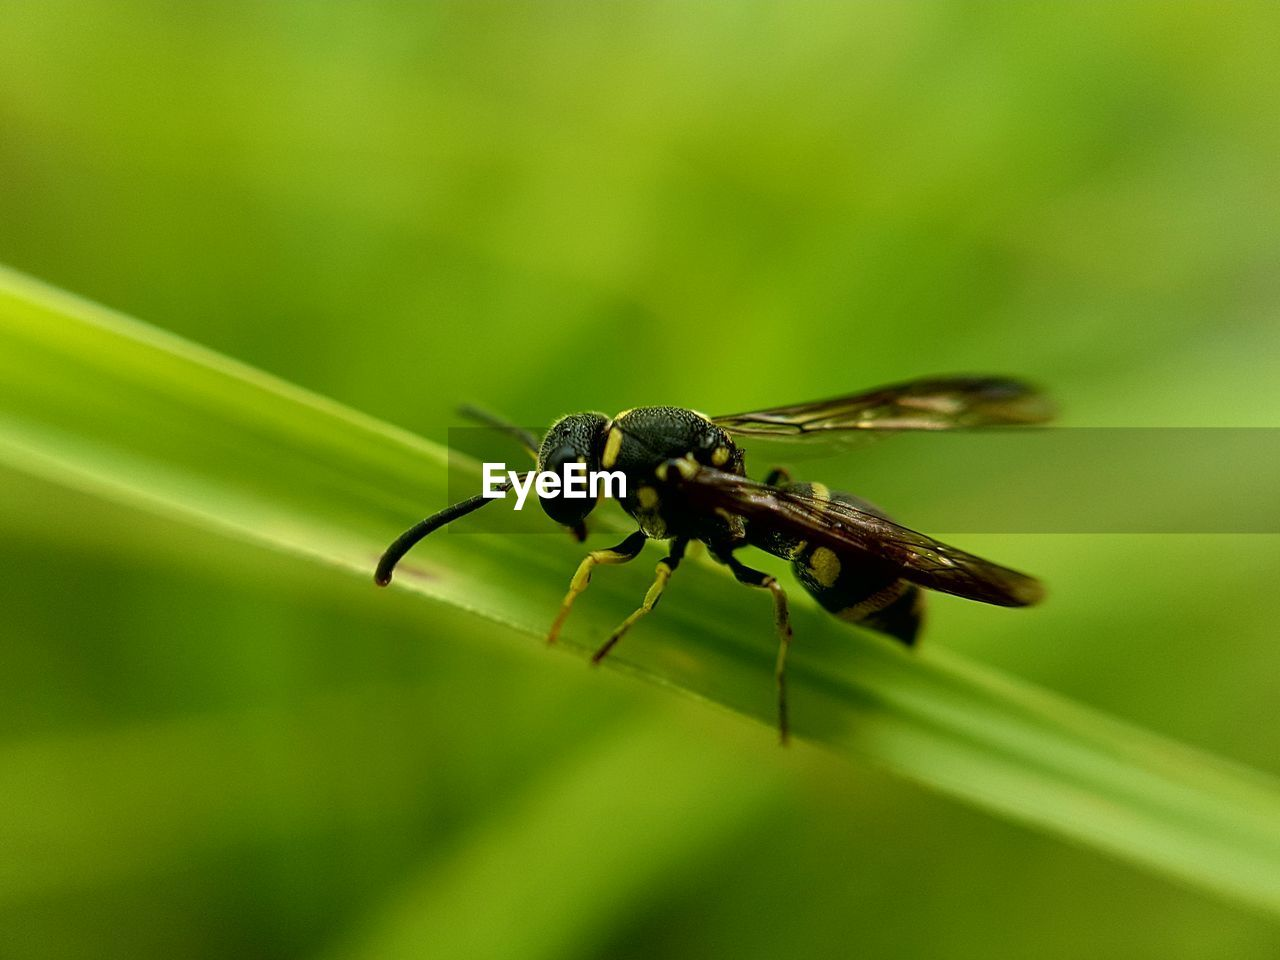 insect, invertebrate, animal themes, animals in the wild, animal wildlife, animal, one animal, green color, close-up, plant, day, no people, focus on foreground, nature, plant part, zoology, leaf, selective focus, animal wing, outdoors, blade of grass